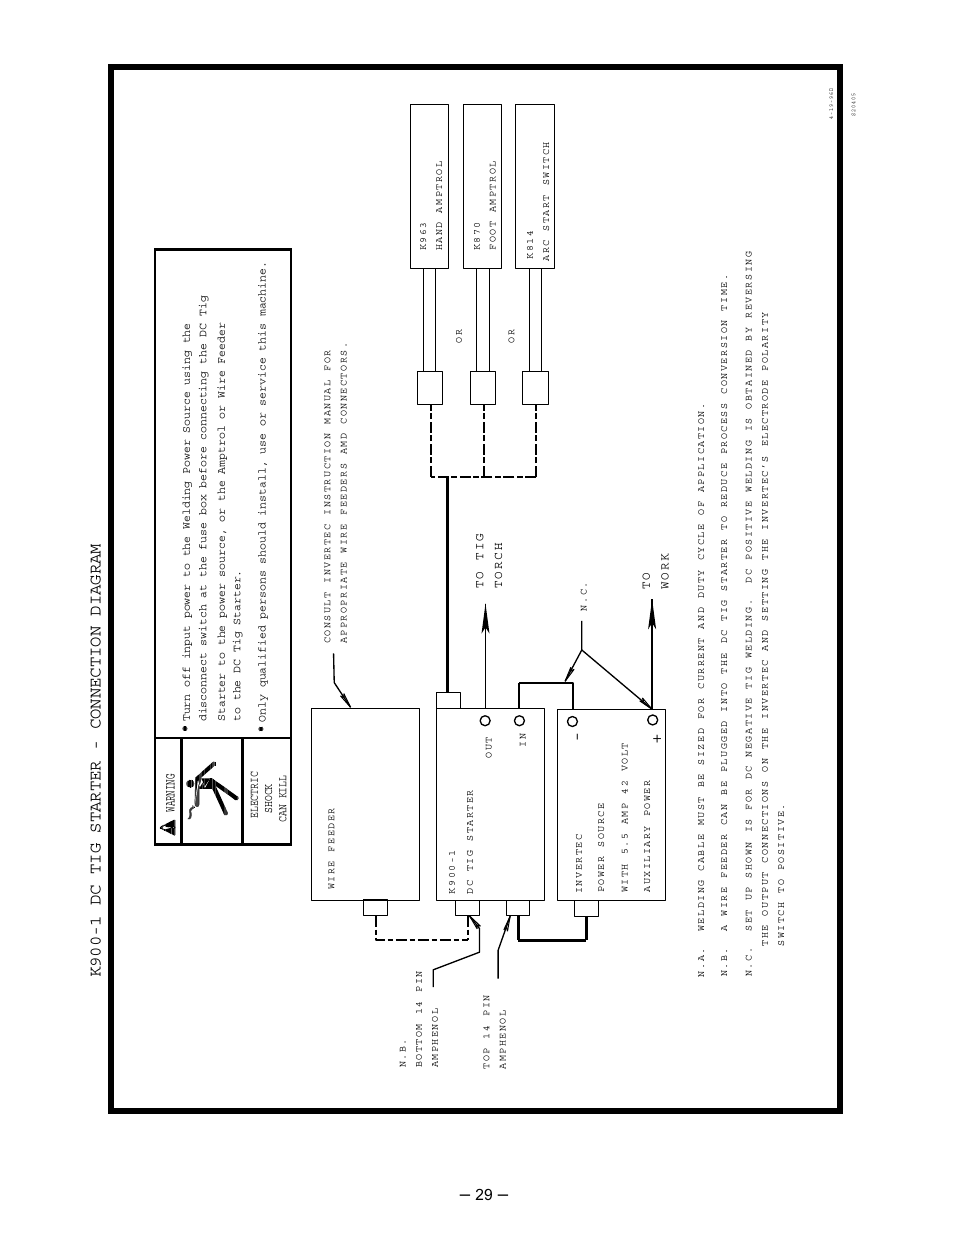 hight resolution of k900 1 dc tig starter connection diagram warning lincoln electric invertec im526 b user manual page 29 40